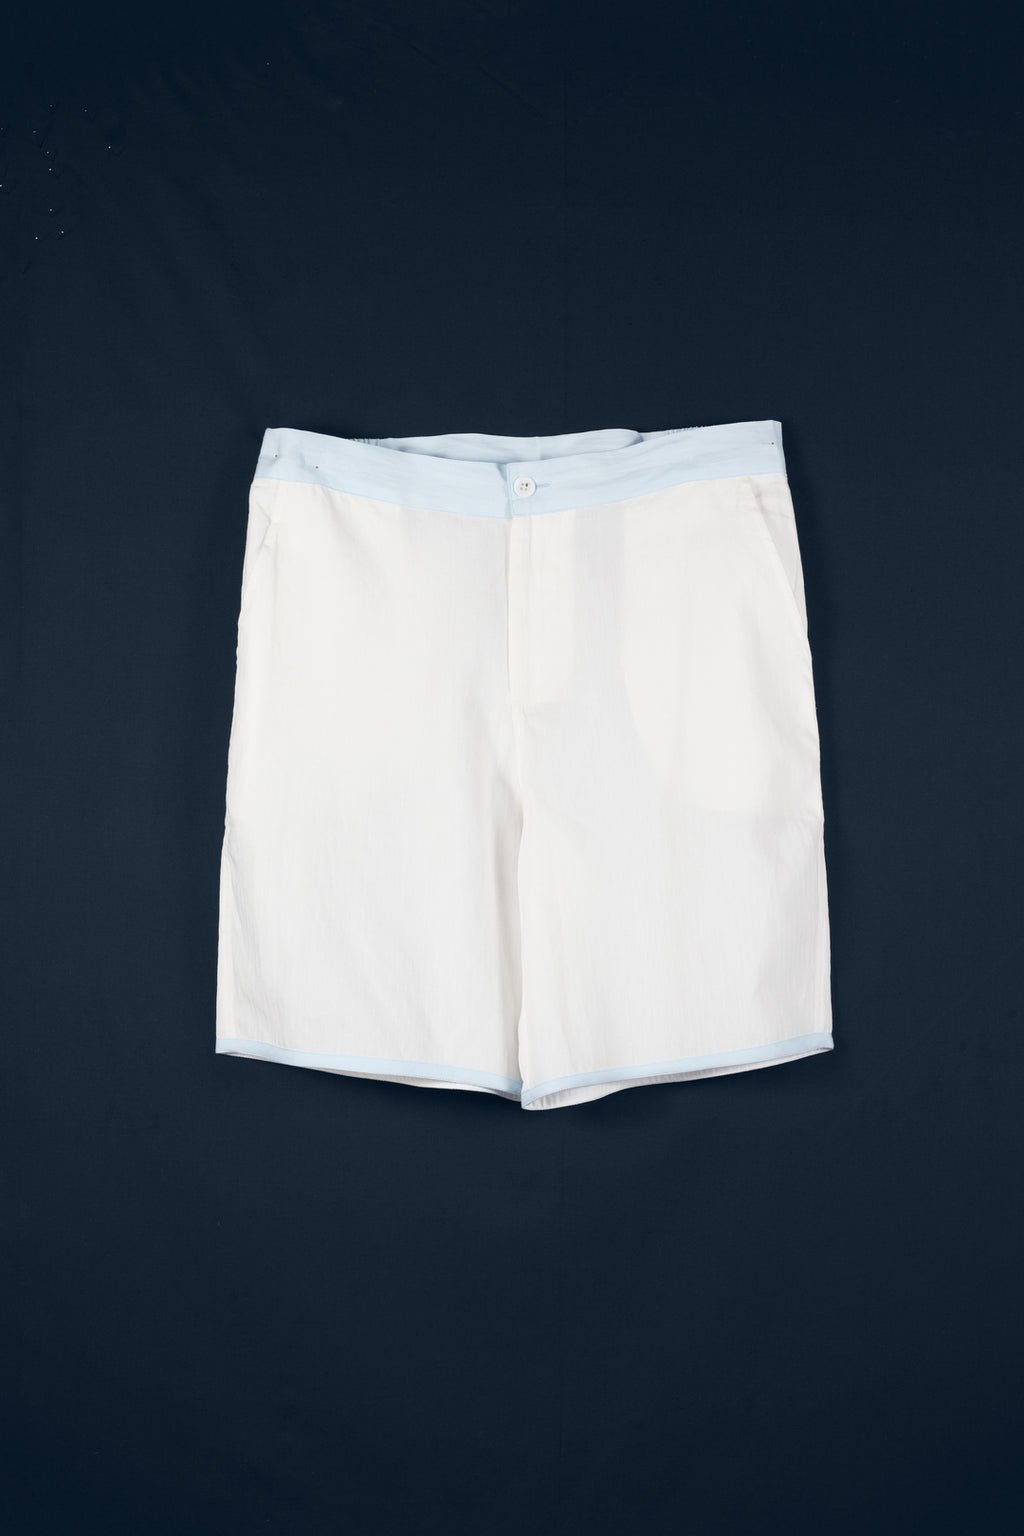 SHORTS Plain & Tape       100%ᴾᵁᴿᴱ COTTON herringbone-light       OFFWHITE-Ice       Paris 1924 Olympics